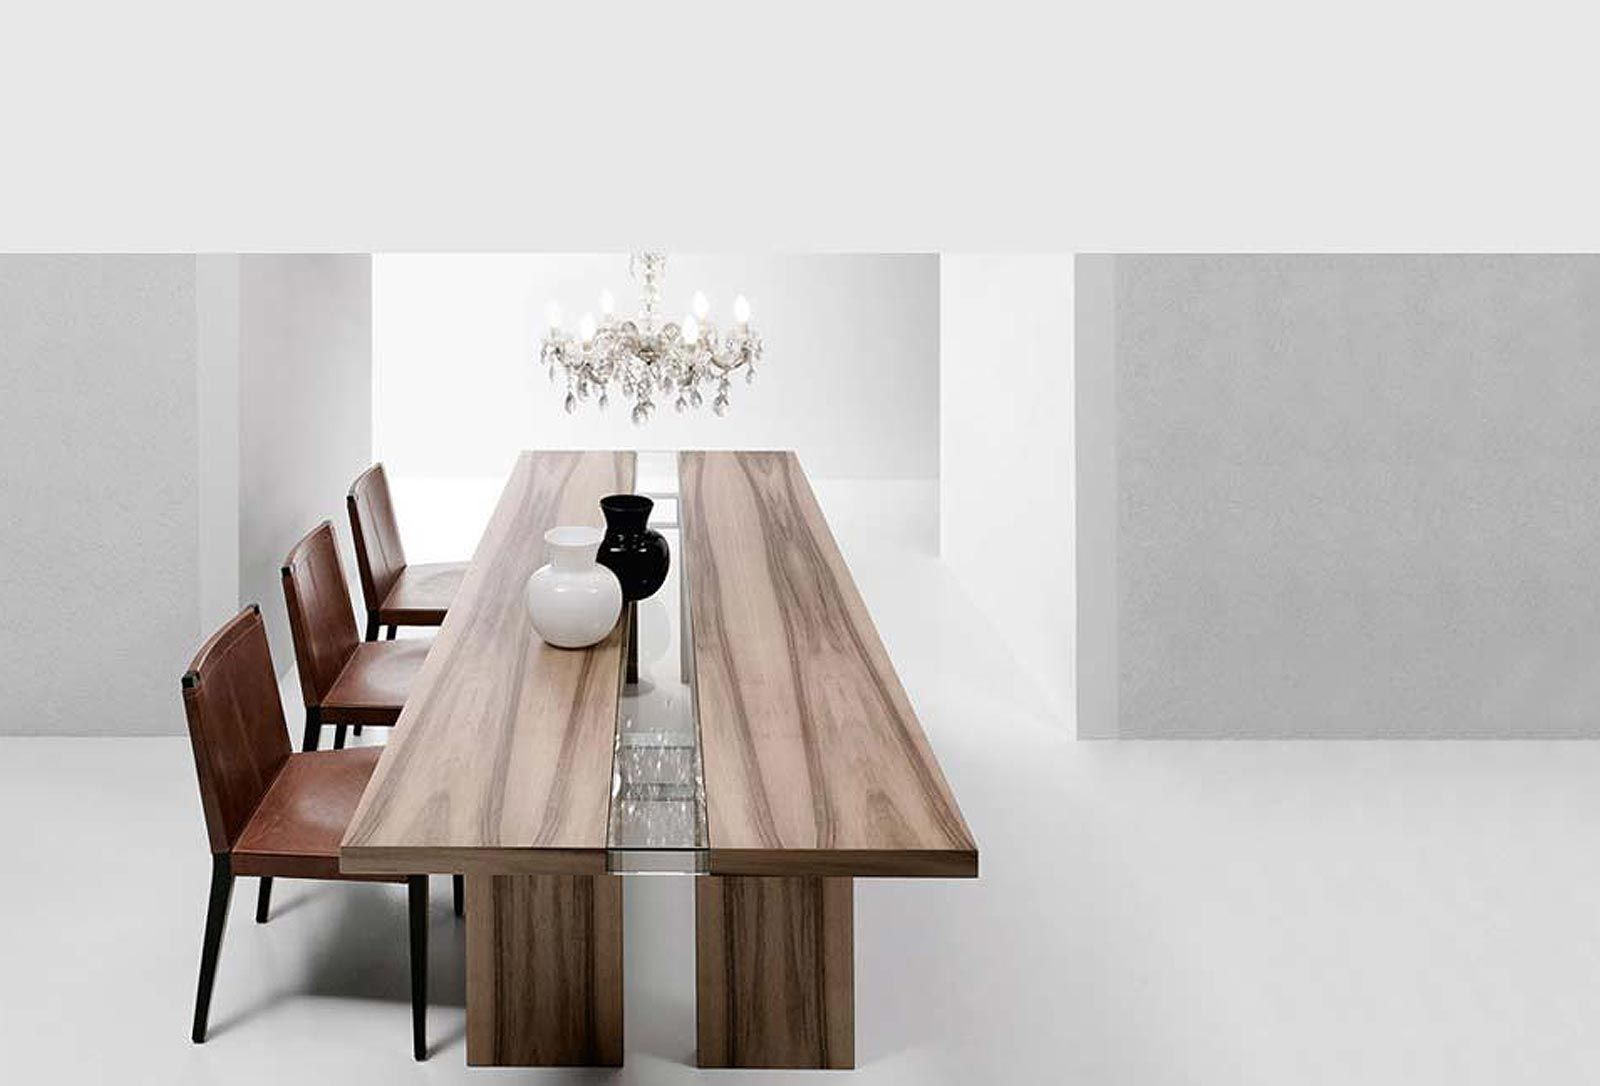 Ritz Dining Table By Bross Dining Table Design Dining Room